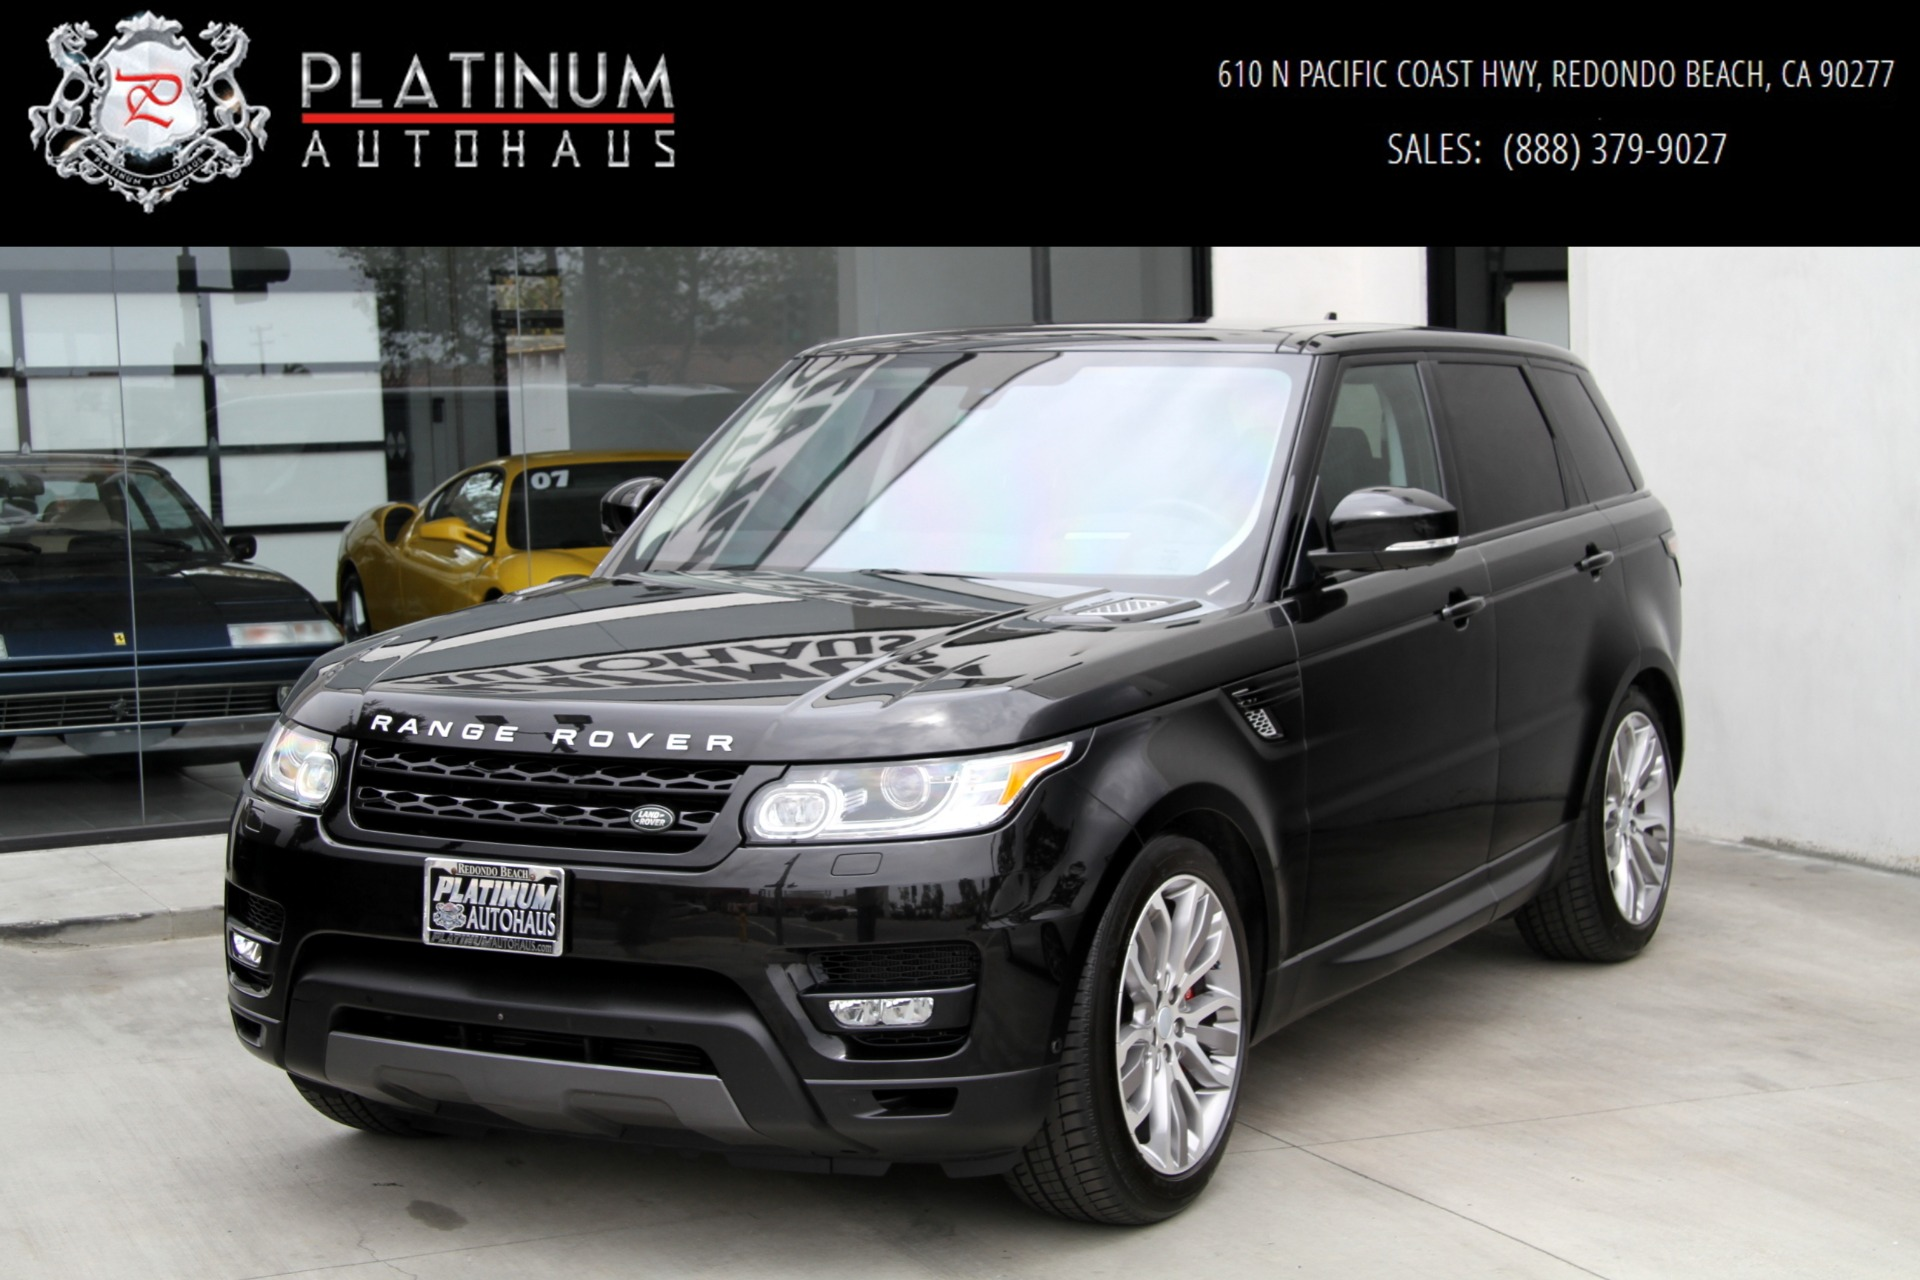 Land Rover For Sale Near Me >> 2016 Land Rover Range Rover Sport Supercharged Dynamic Stock # 6184 for sale near Redondo Beach ...